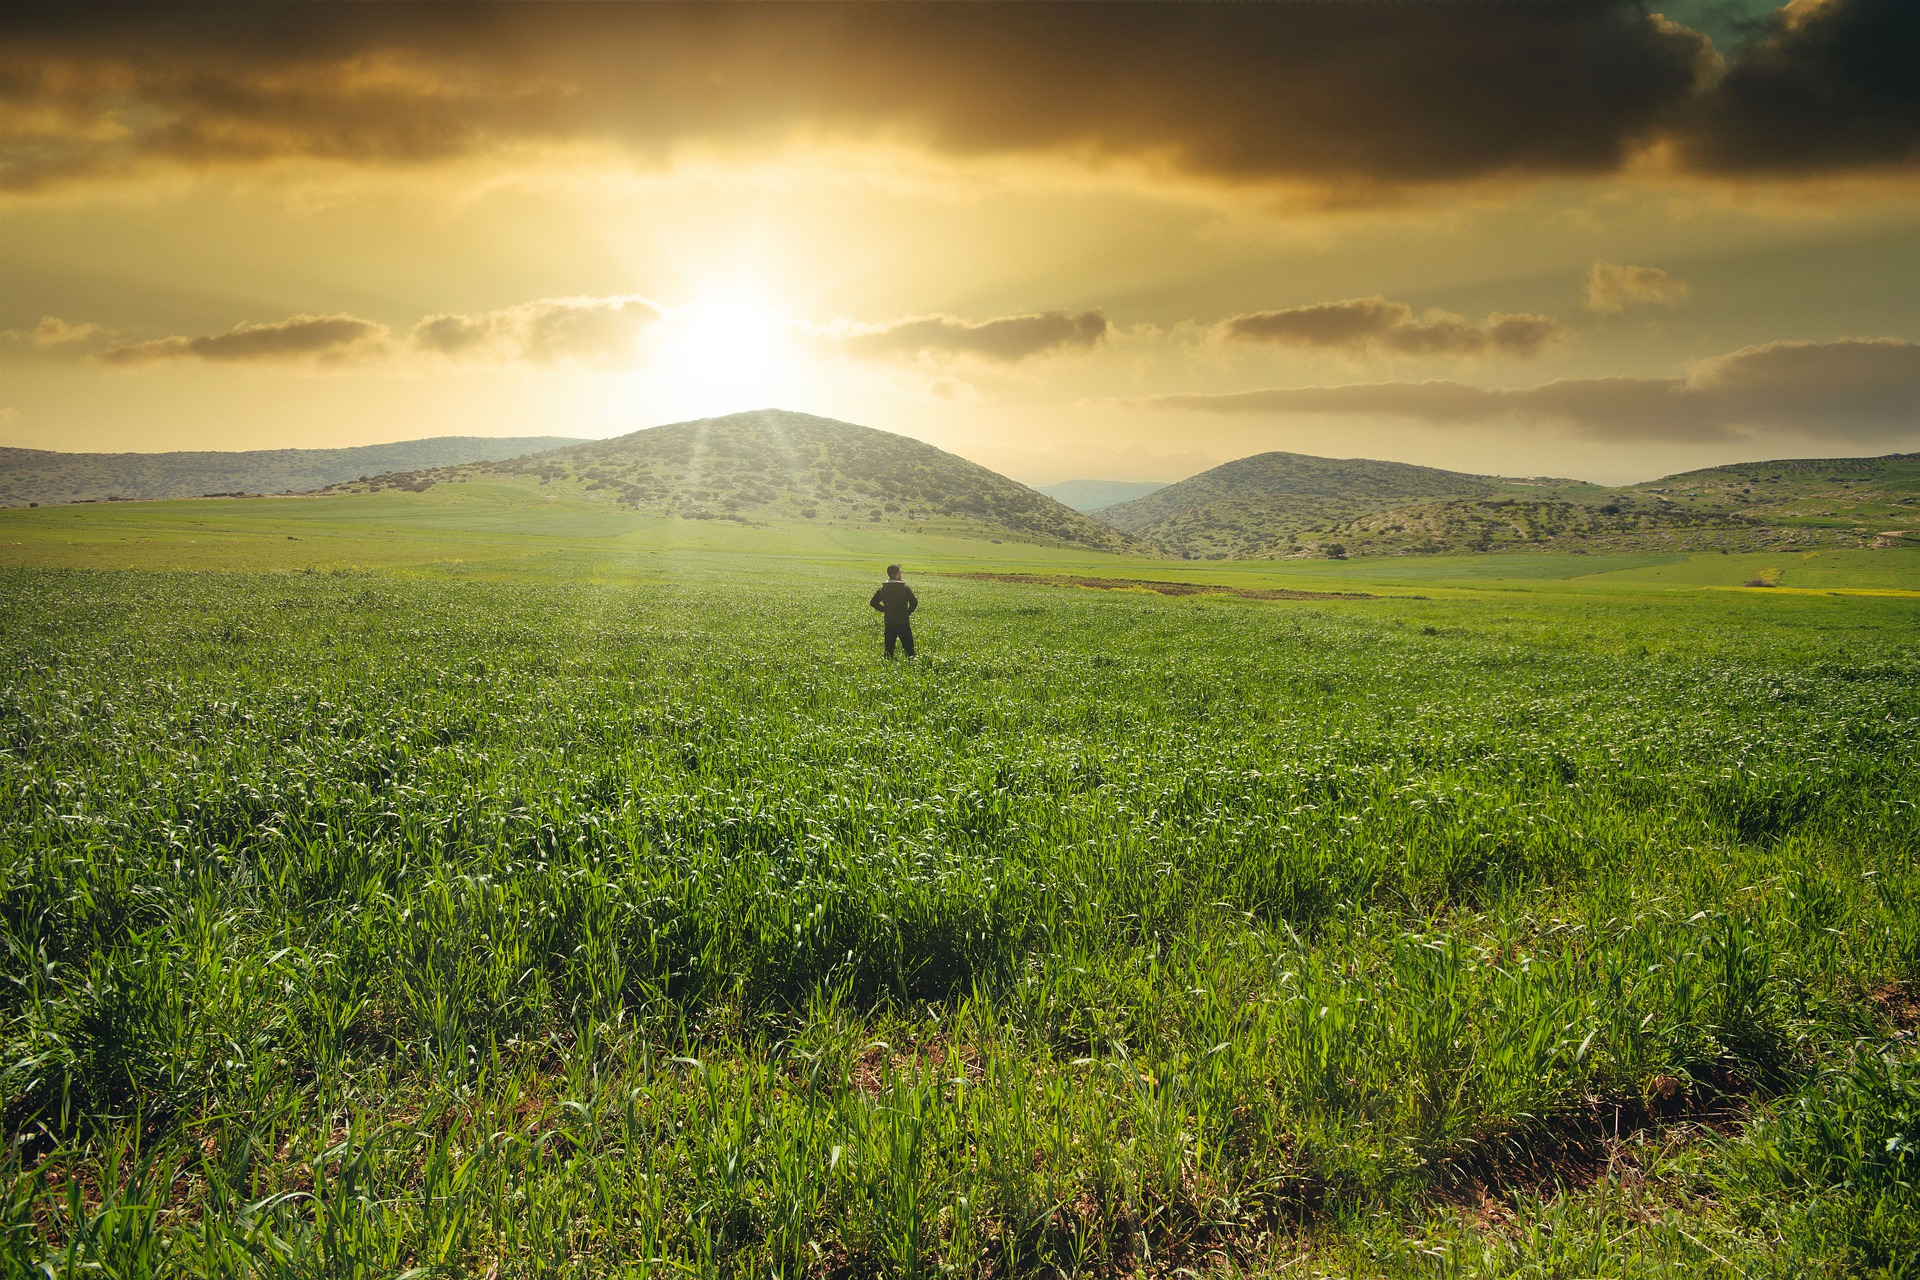 farmer alone in a green field with the sun setting over the hill in the background